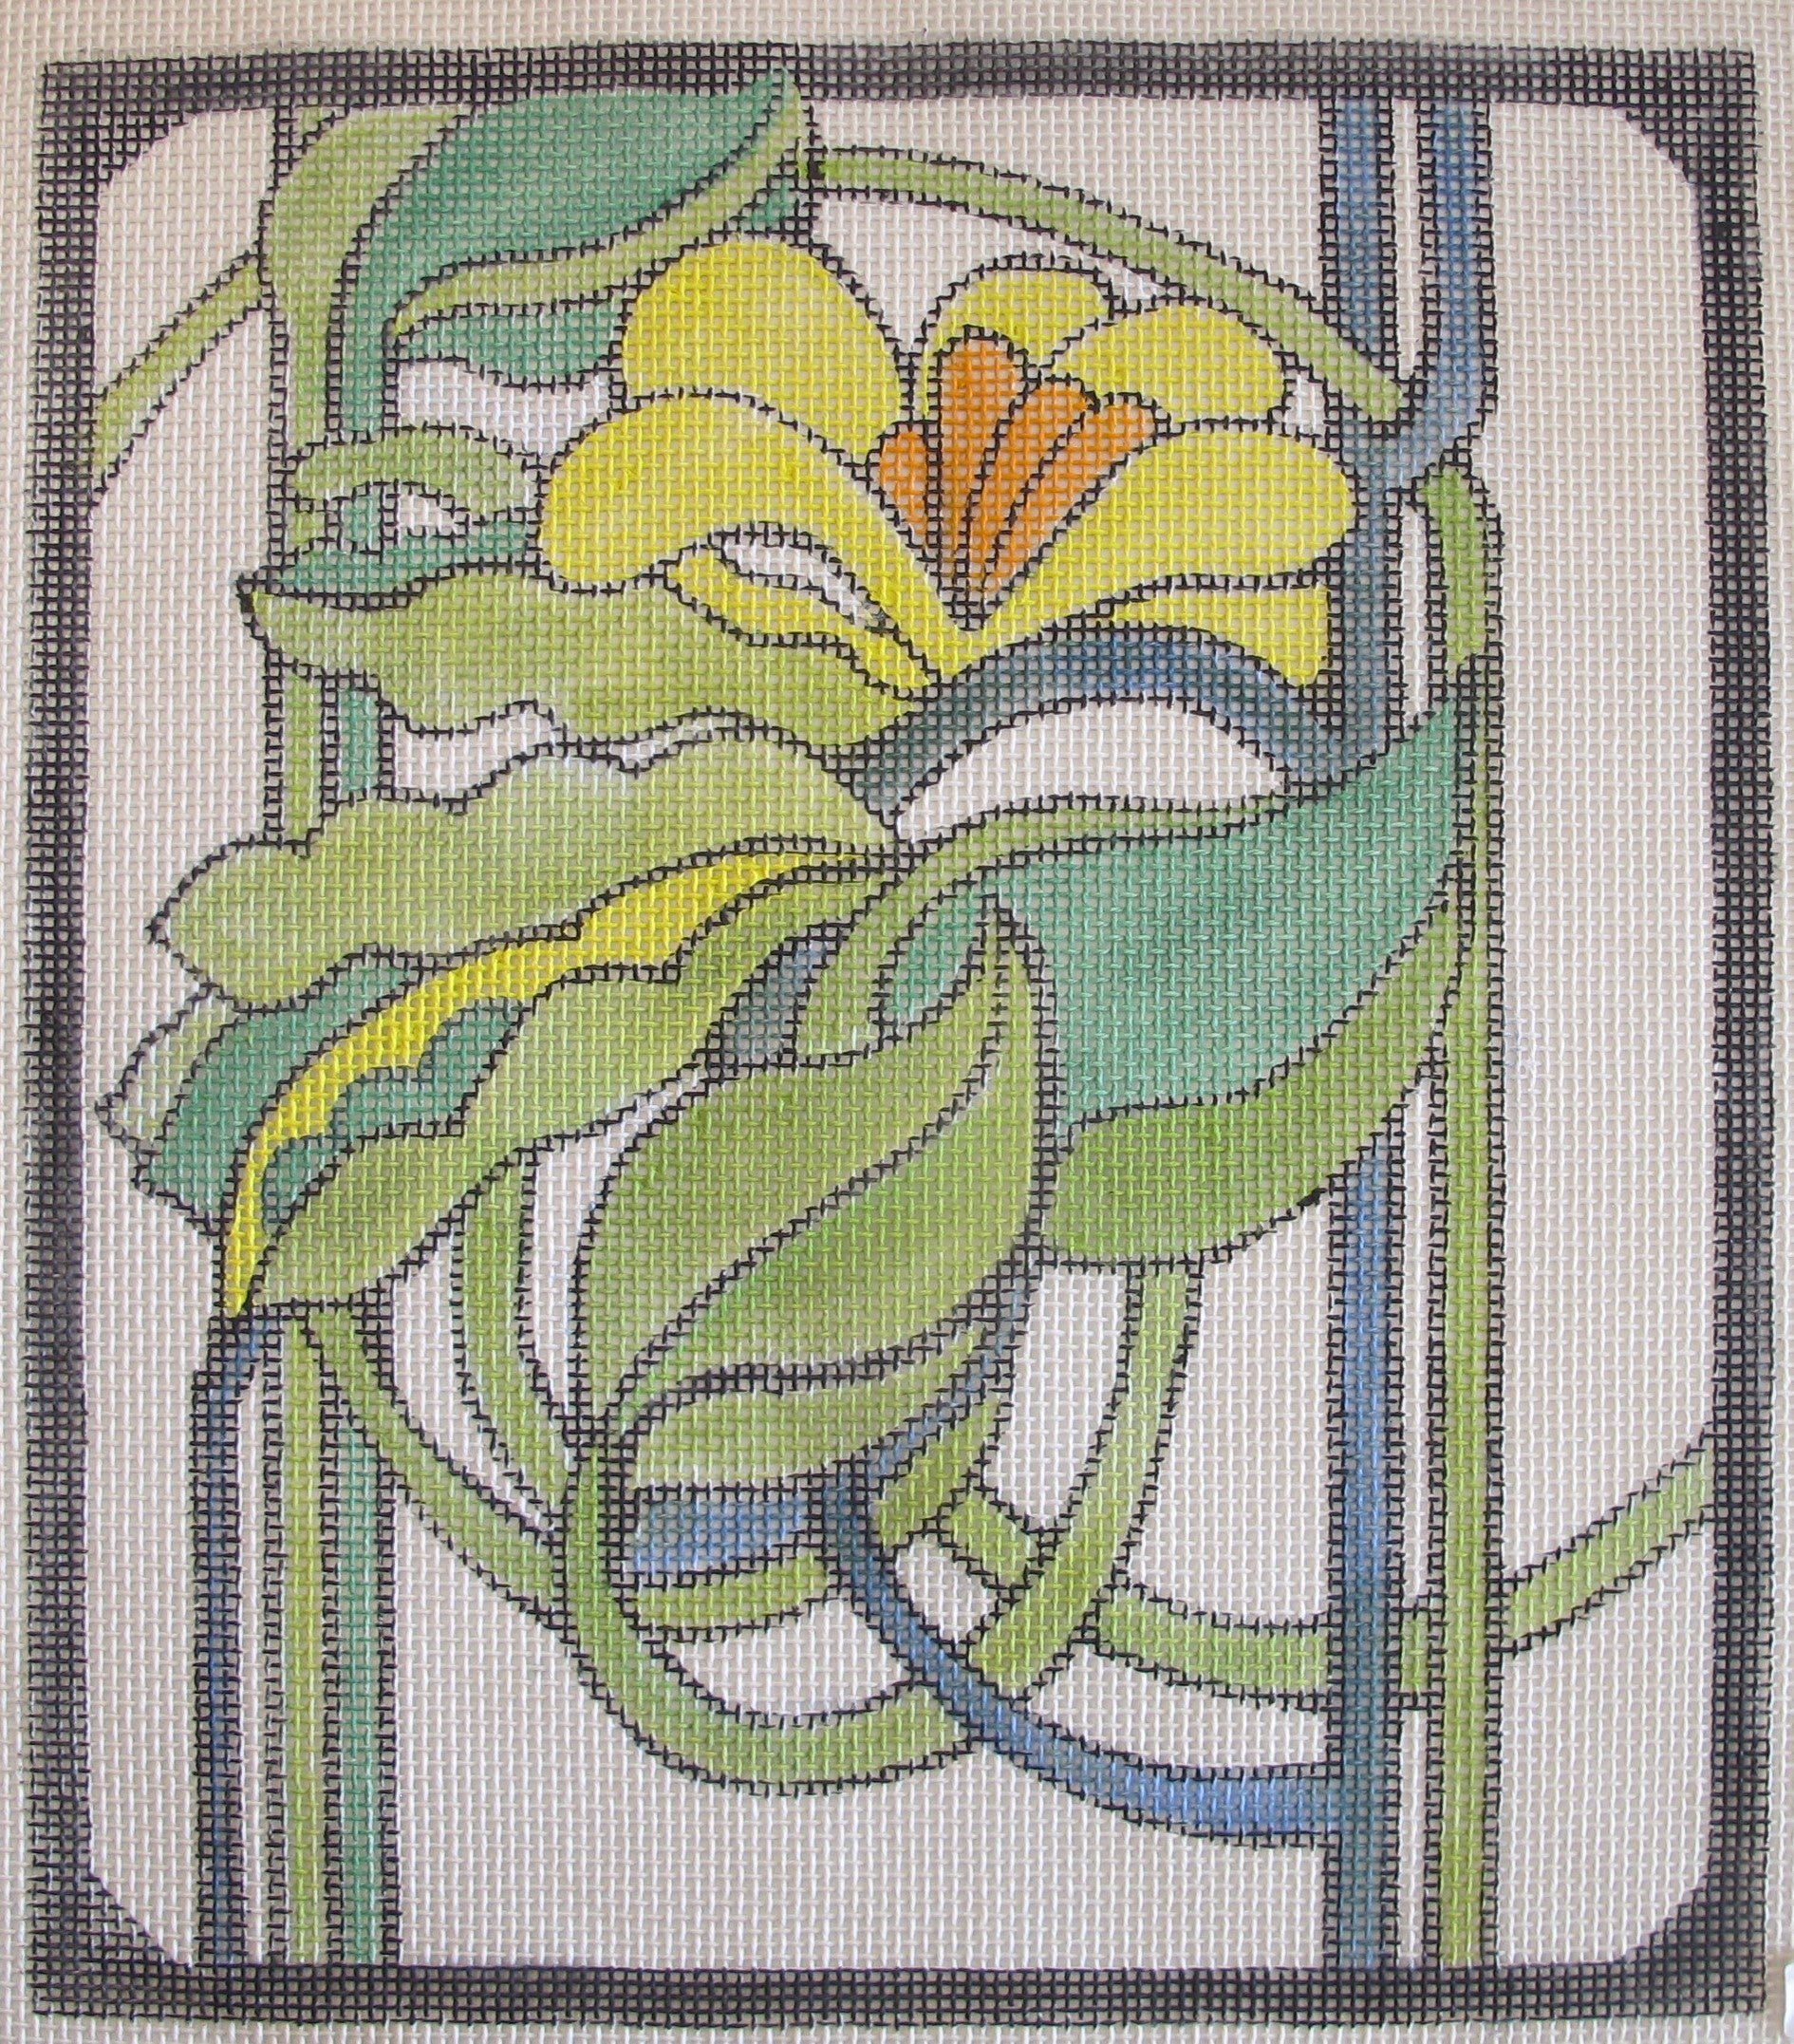 Stained Glass Pea Pods w/Flowers